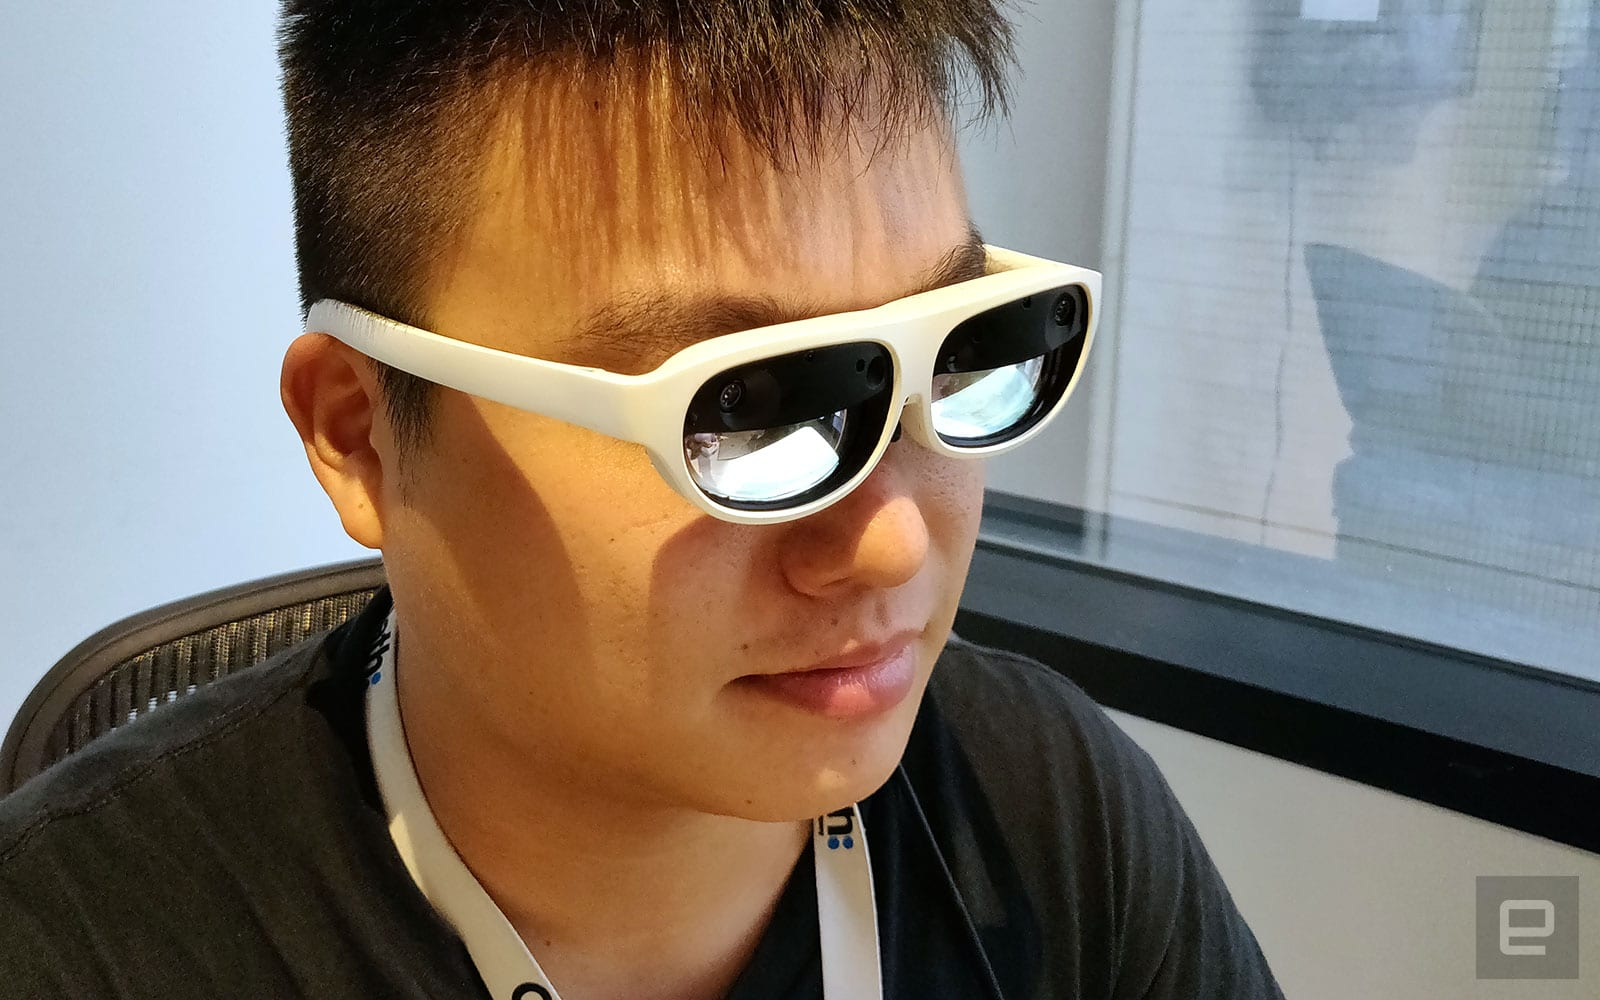 Nreal Light are mixed reality glasses in disguise